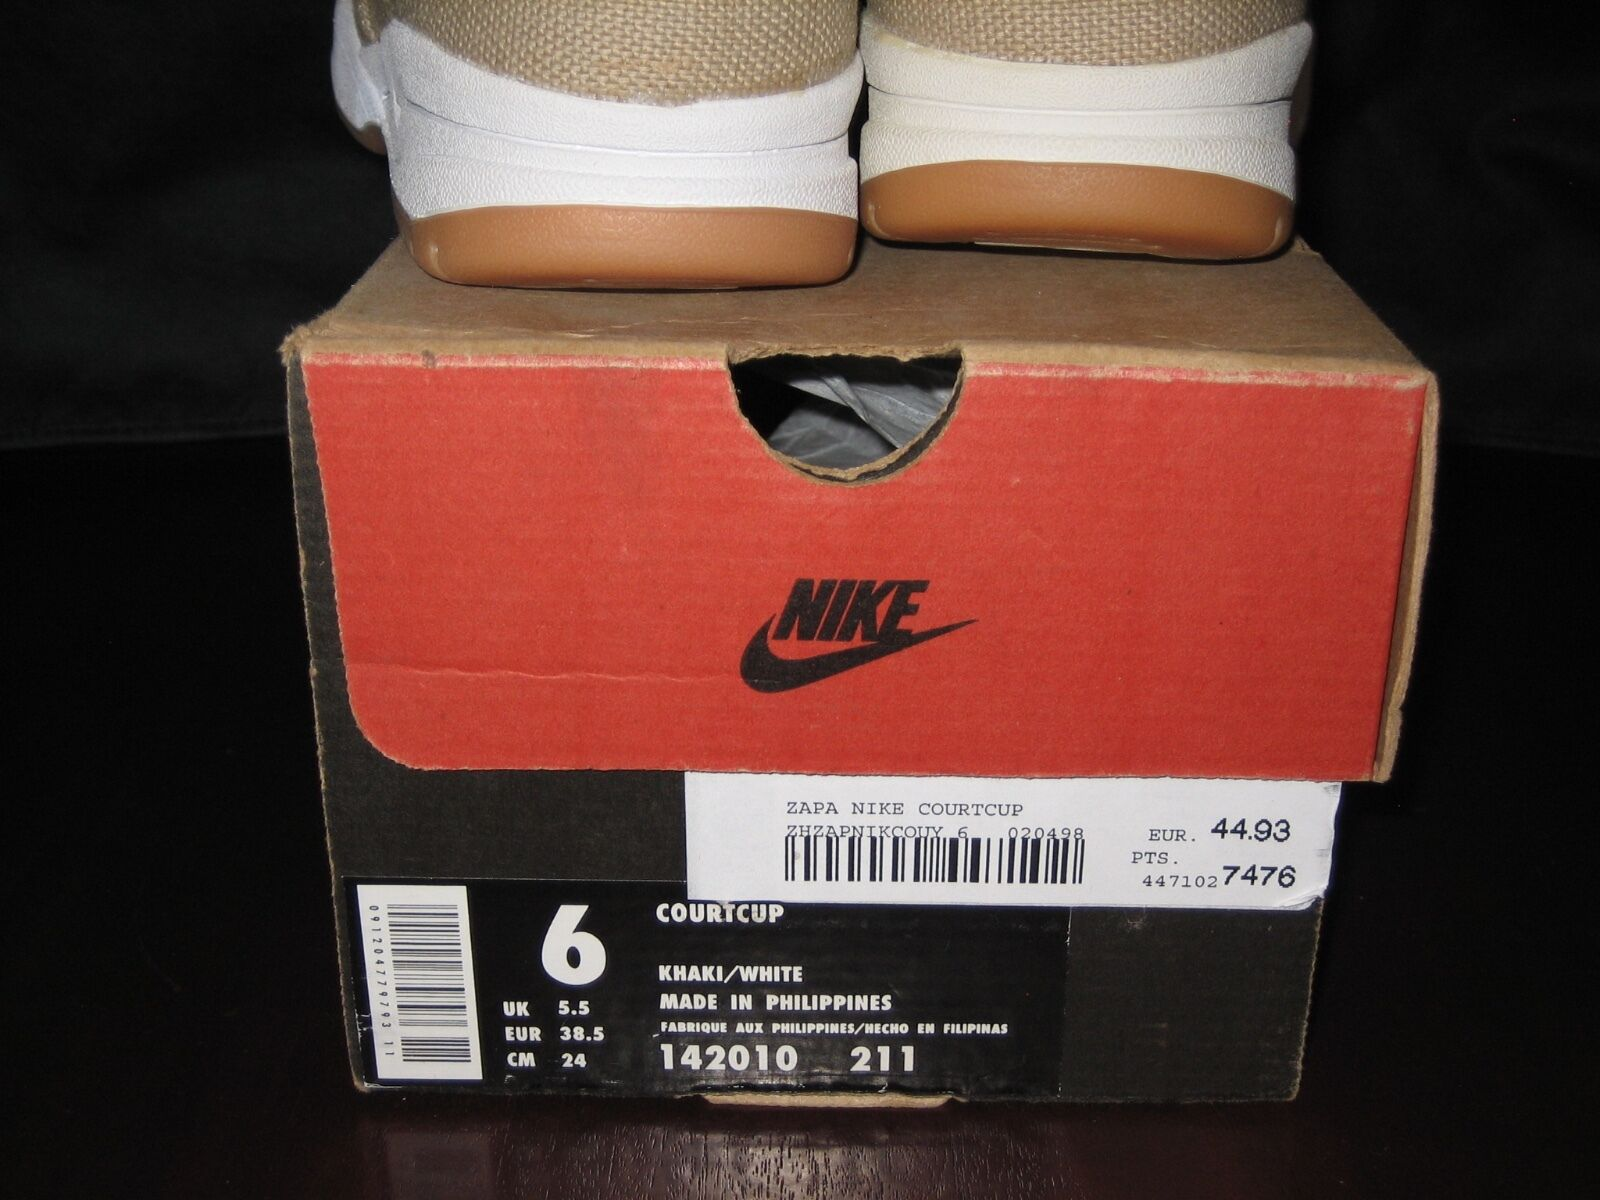 Nike Courtcup '98 '98 '98 USA 6 Canvas NIB NOS vintage ORIGINAL sneakers skate urban air e9e999